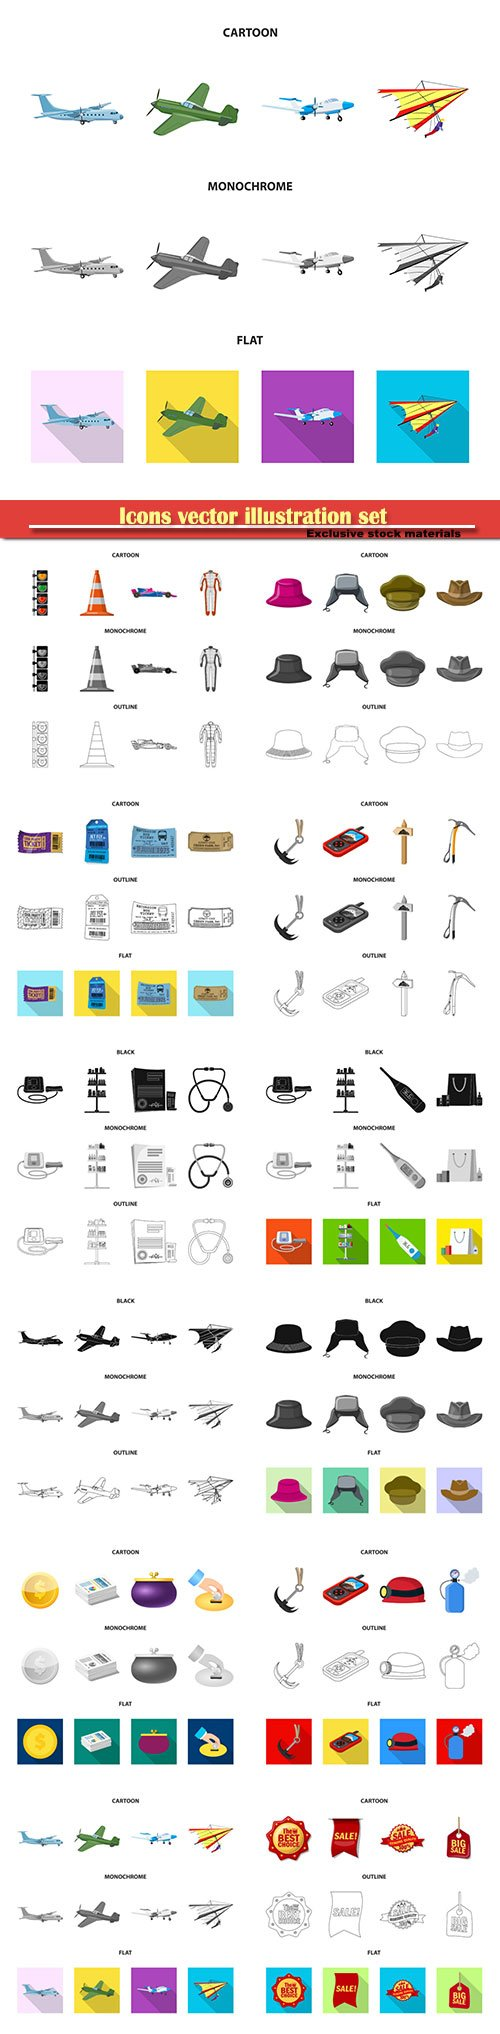 Icons vector illustration set # 7